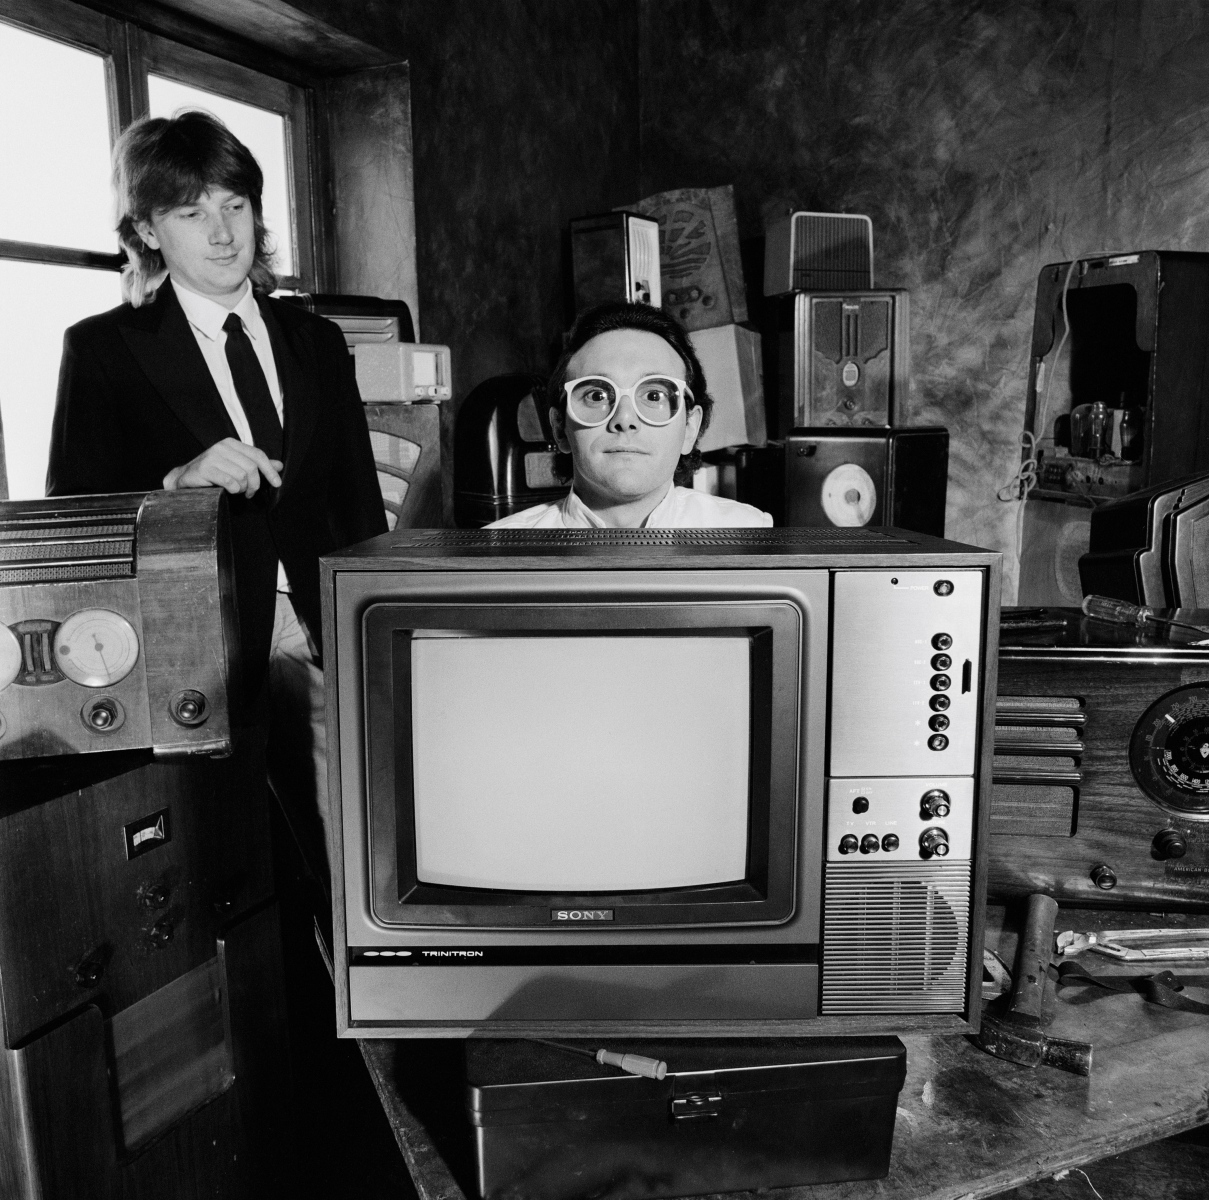 Geoff Downes (left) and Trevor Horn (right) from the group Buggles pose together with various radios and a television in London in June 1979. (Fin Costello/Redferns)